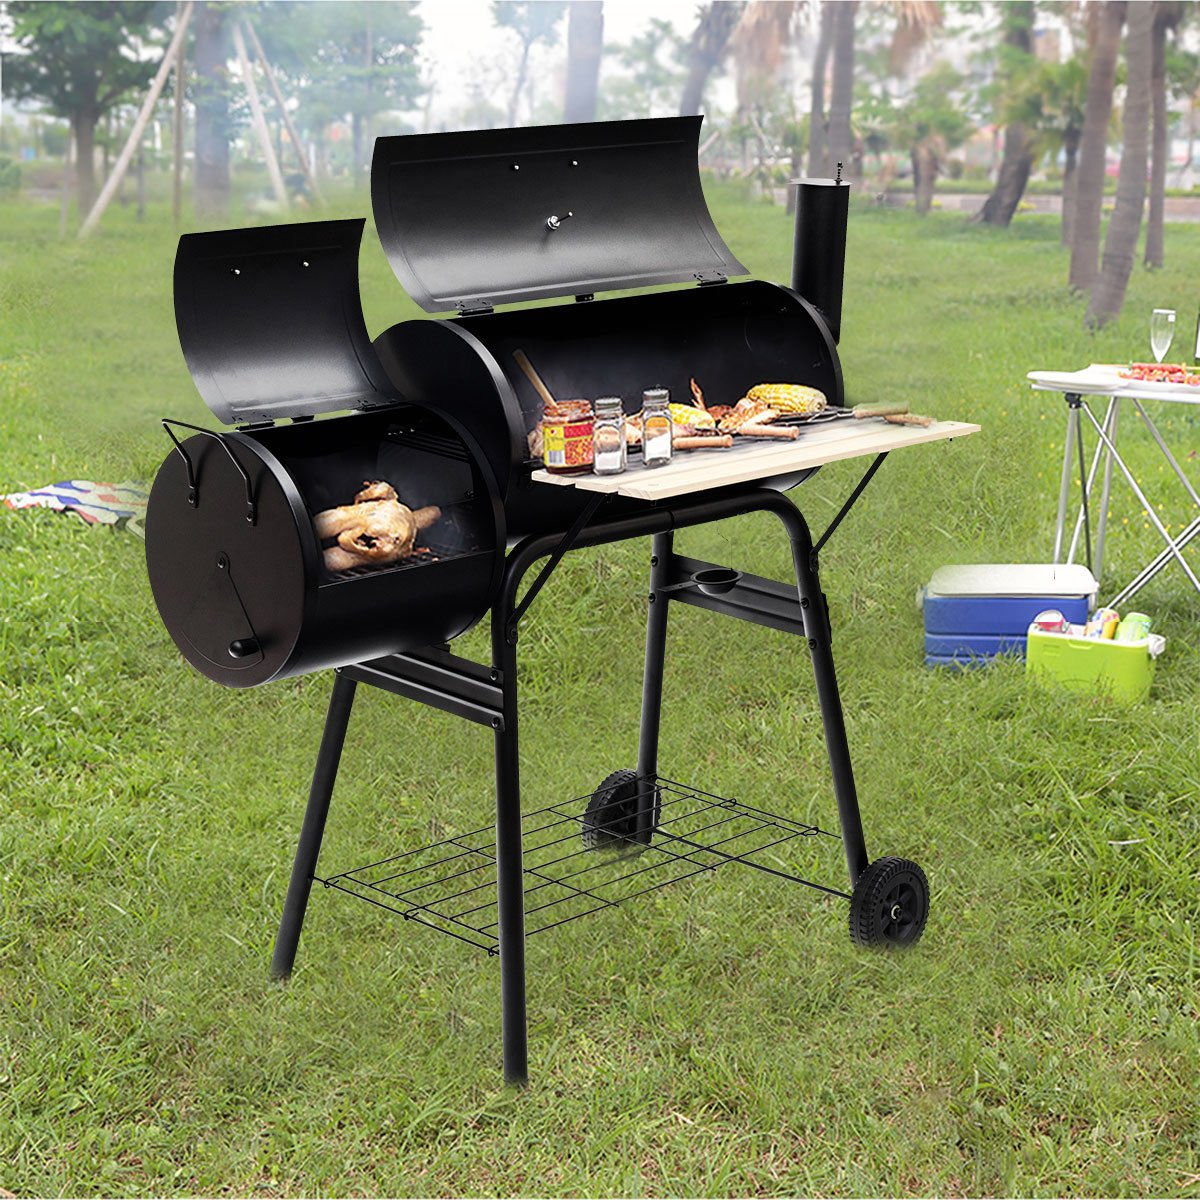 KCHEX>Outdoor BBQ Grill Charcoal Barbecue Pit Patio Backyard Meat Cooker Smoker>This Is Our Practical And Fashionable Charcoal Grill Which Will Enable You To Enjoy Outdoor Cooking With Your Family And